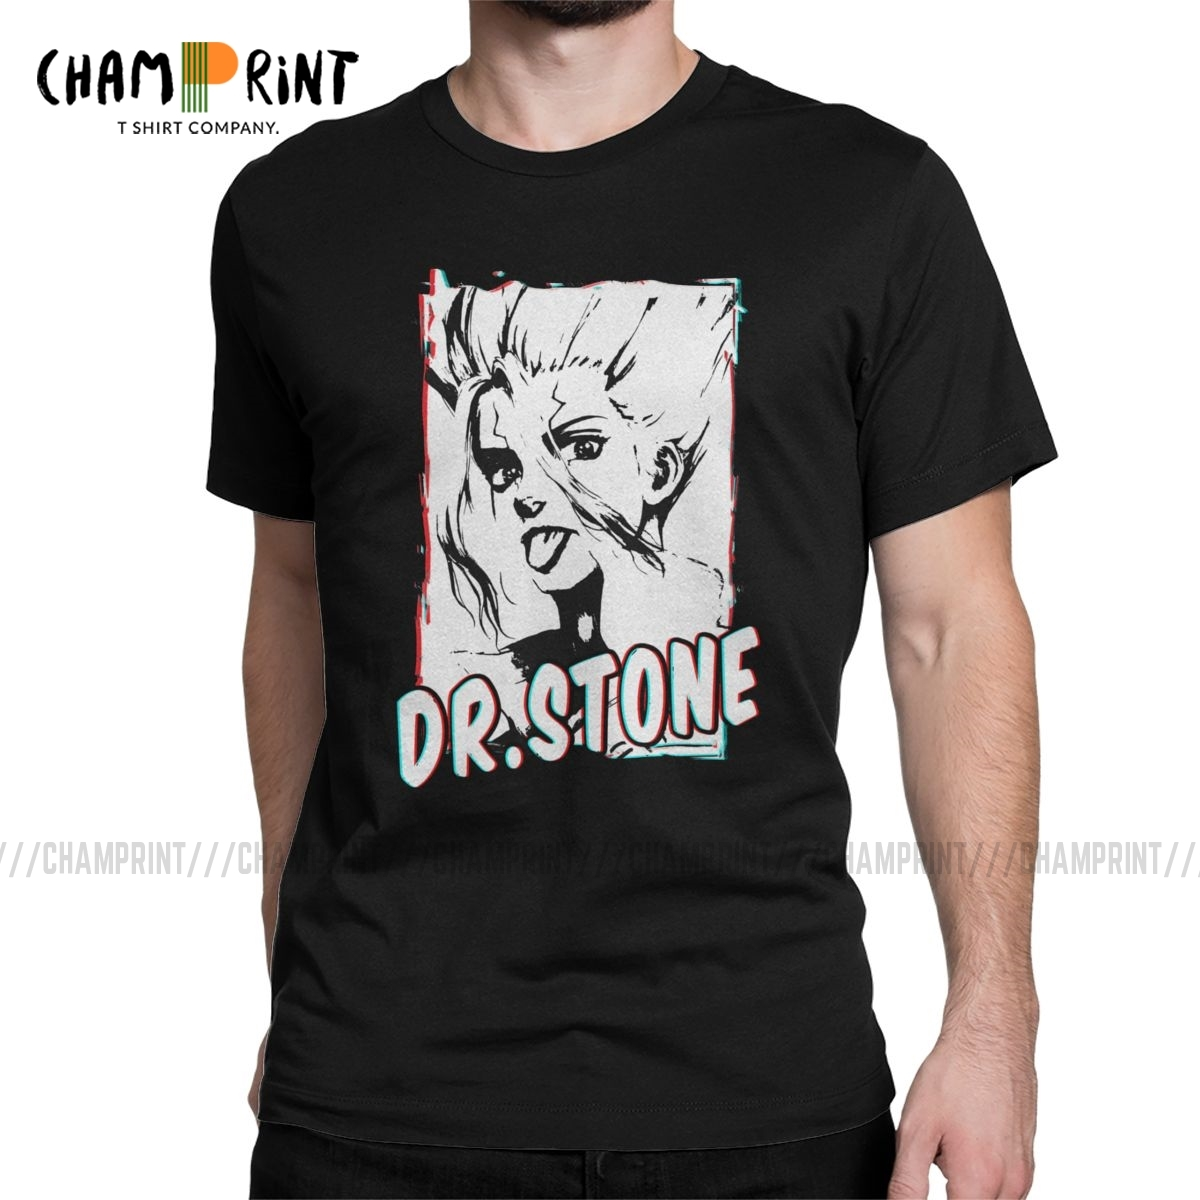 Men's Senku The Doctor T Shirts Dr Stone Anime Japanese Manga Cotton Clothing Casual Short Sleeve Tees Summer T-Shirts